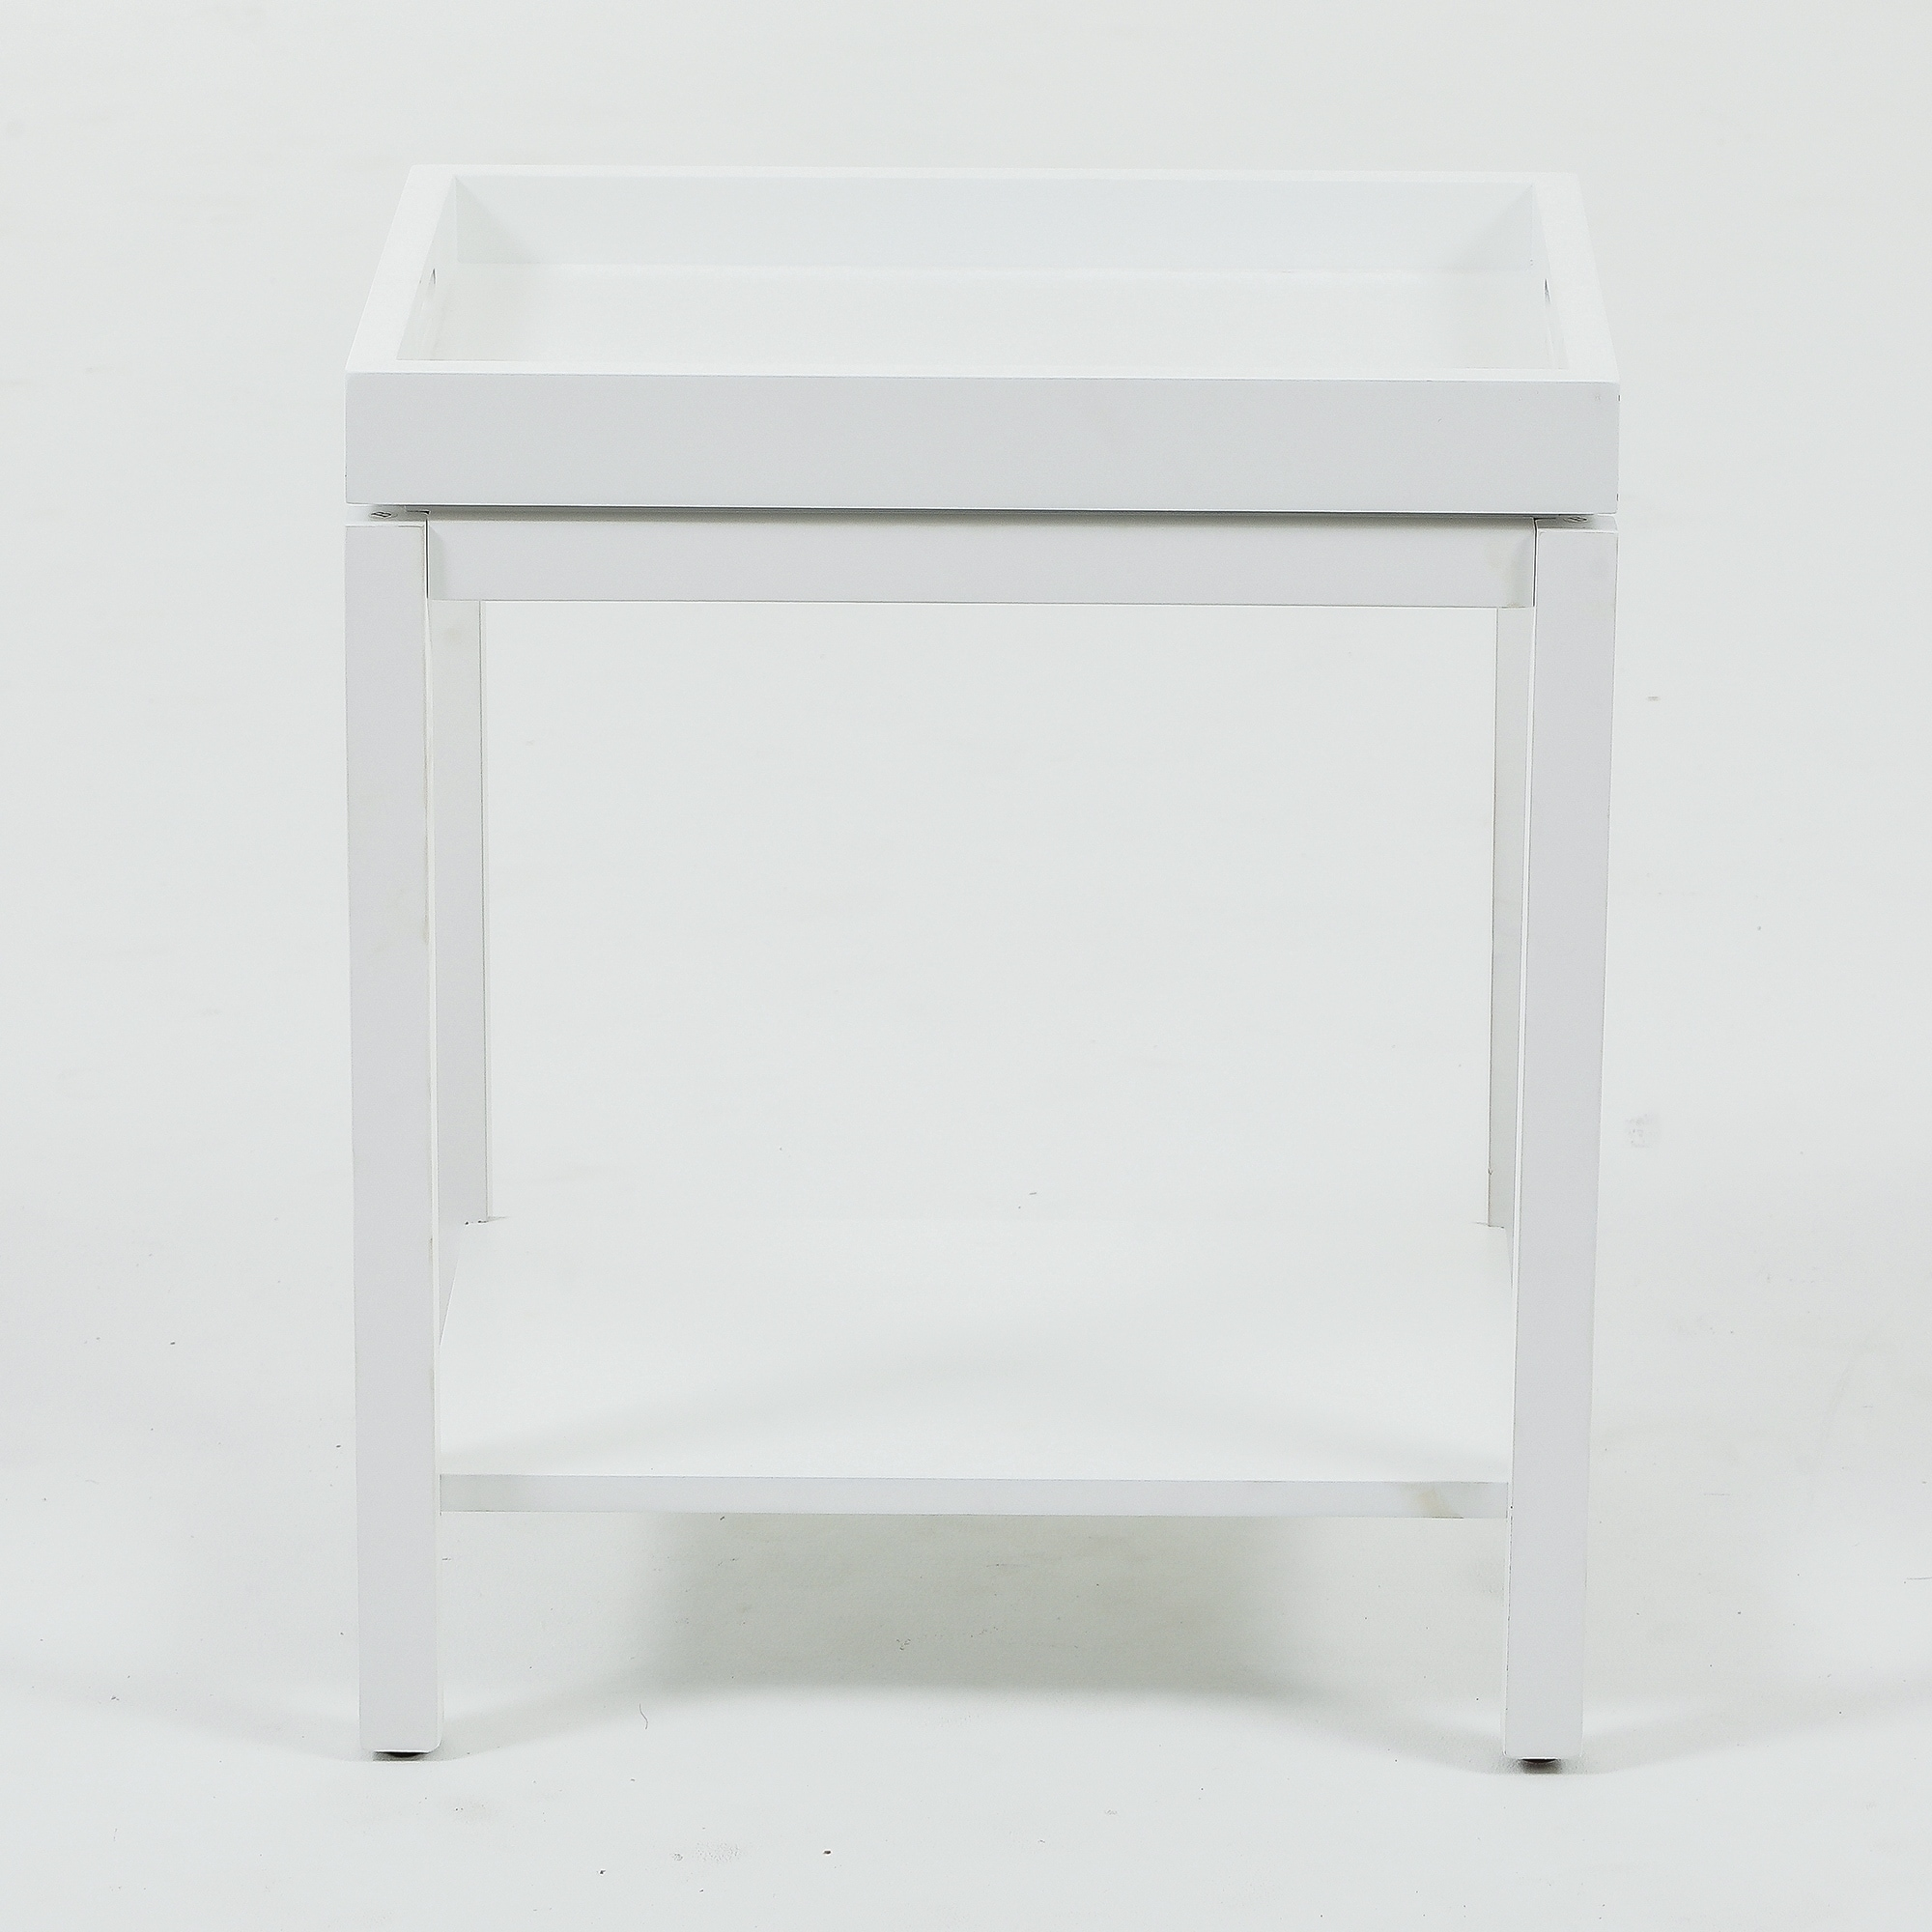 removable tray top shelf modern end table free white gray accent with shipping today vintage french bedside tables cabinets chests furniture wicker side glass cordless battery